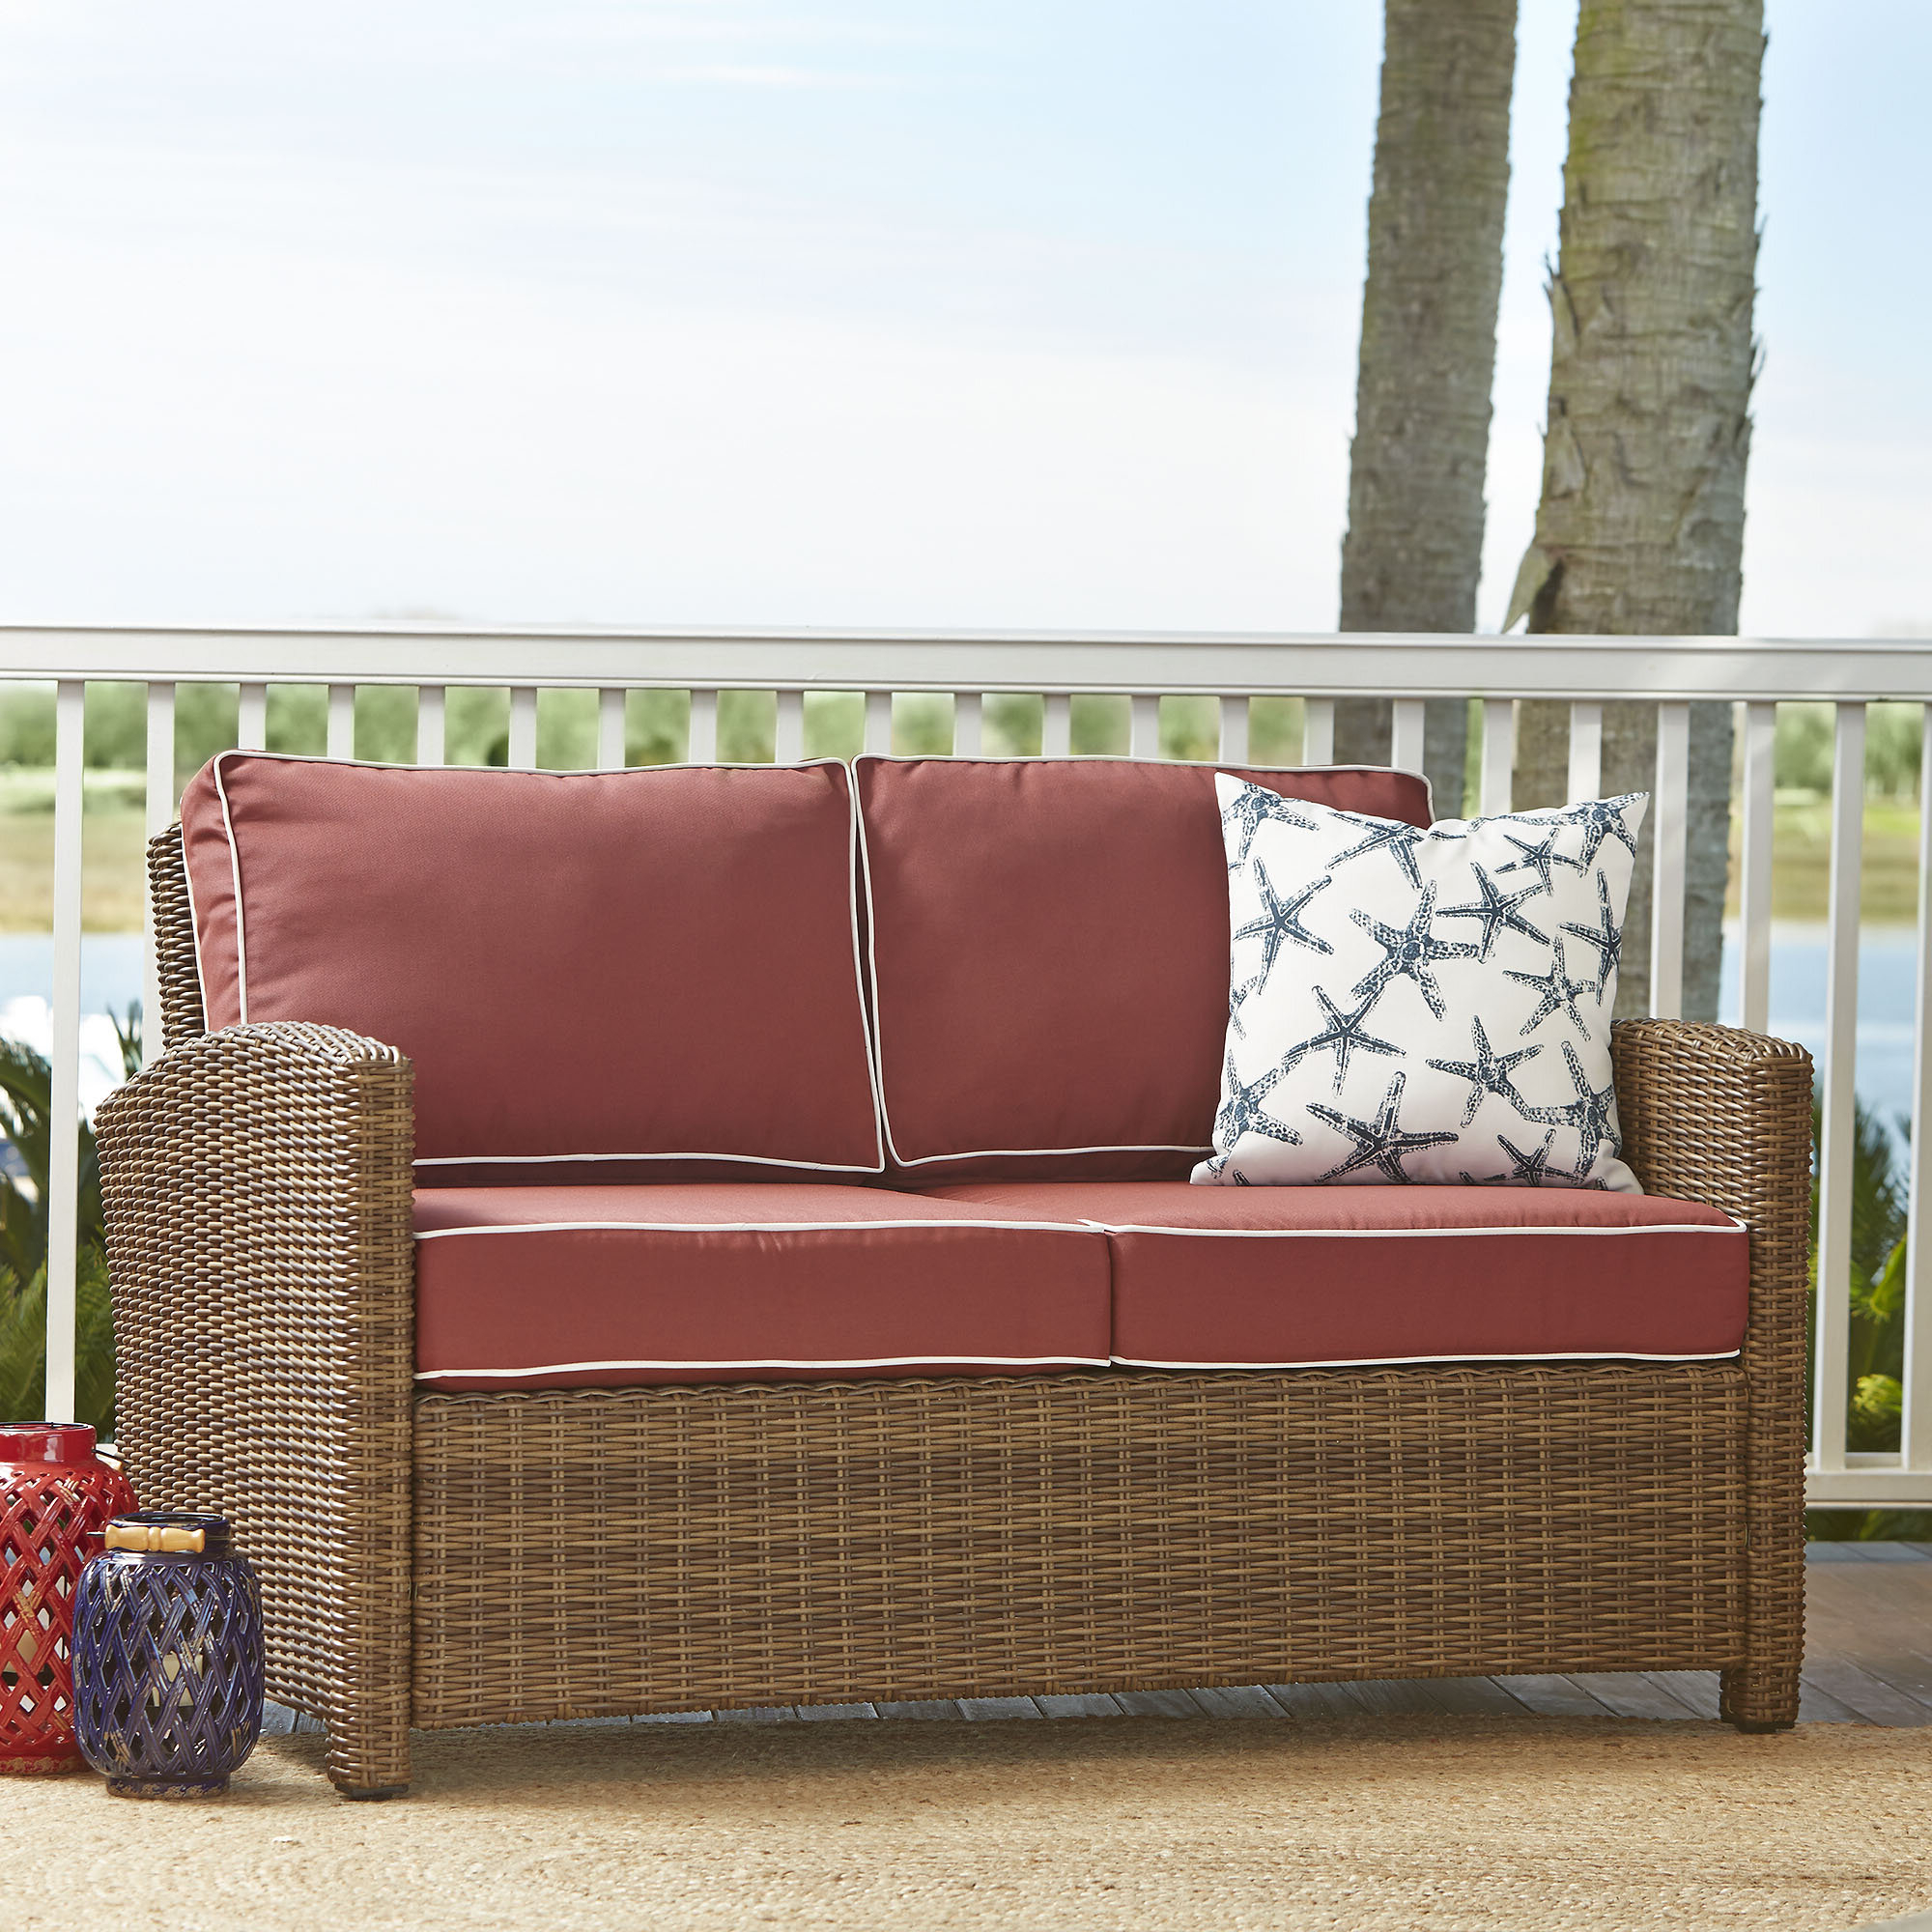 Lawson Wicker Loveseats With Cushions Pertaining To Most Popular Lawson Wicker Loveseat With Cushions (Gallery 1 of 25)